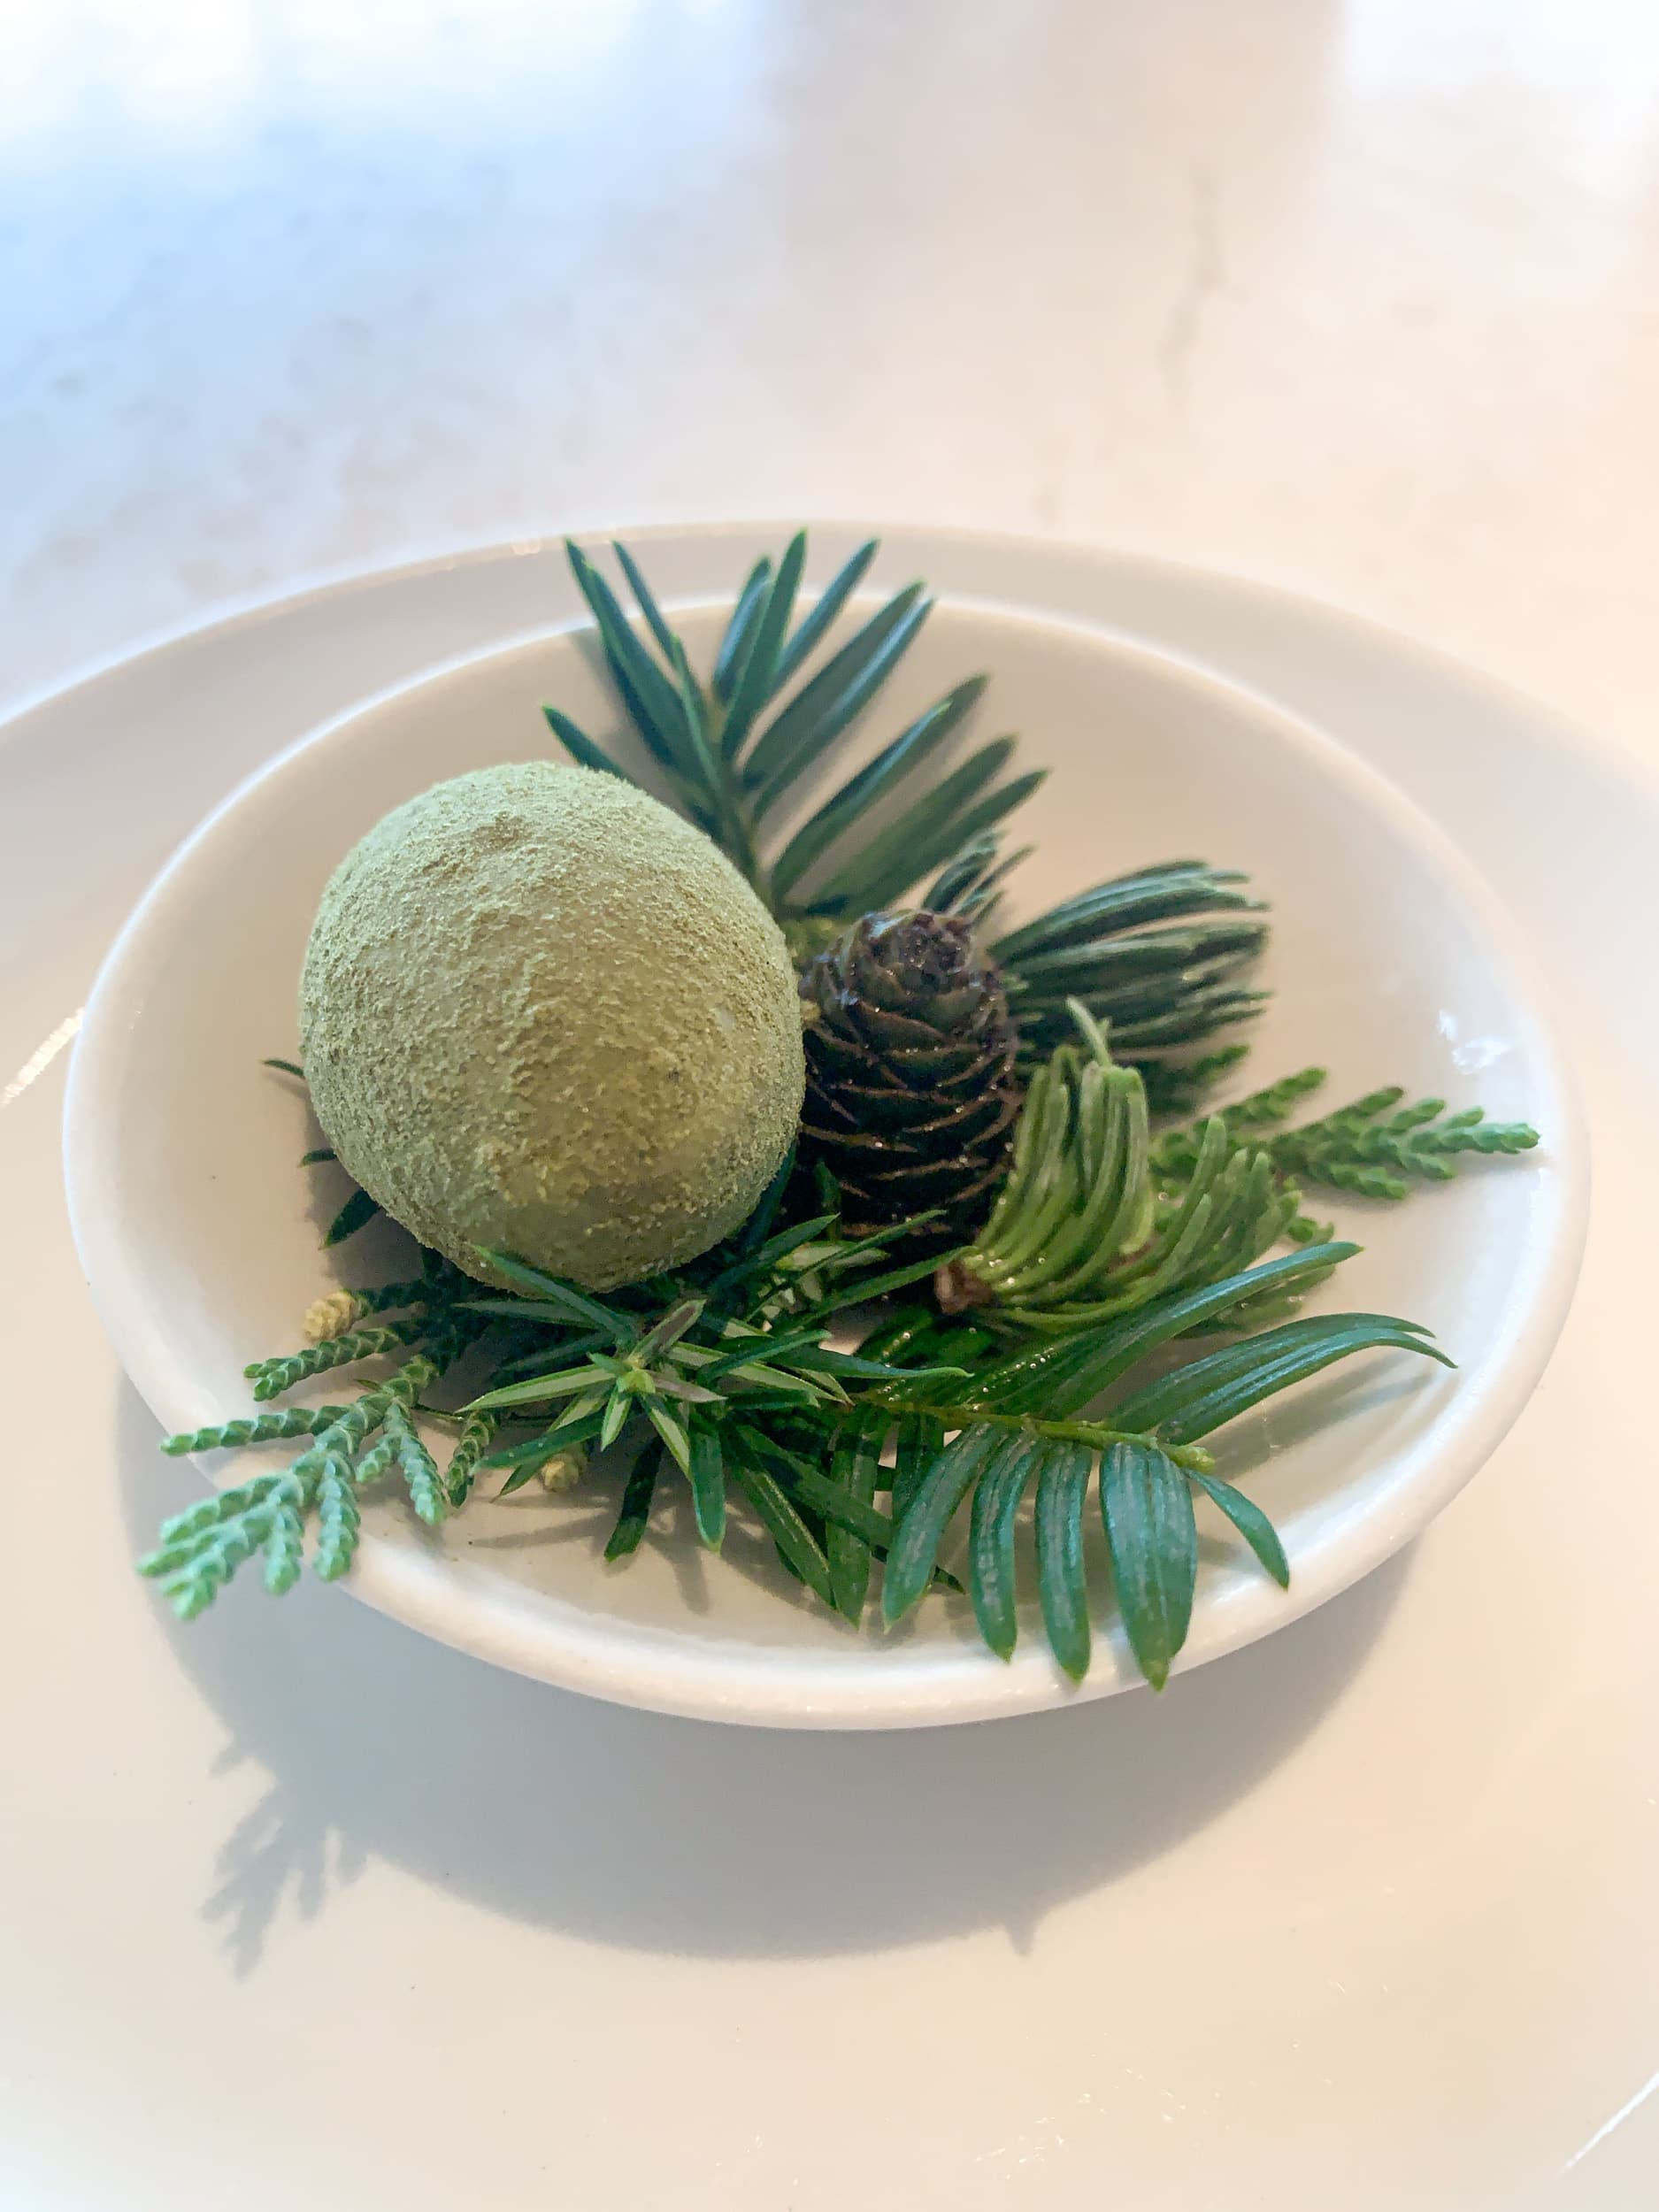 Green egg with pine